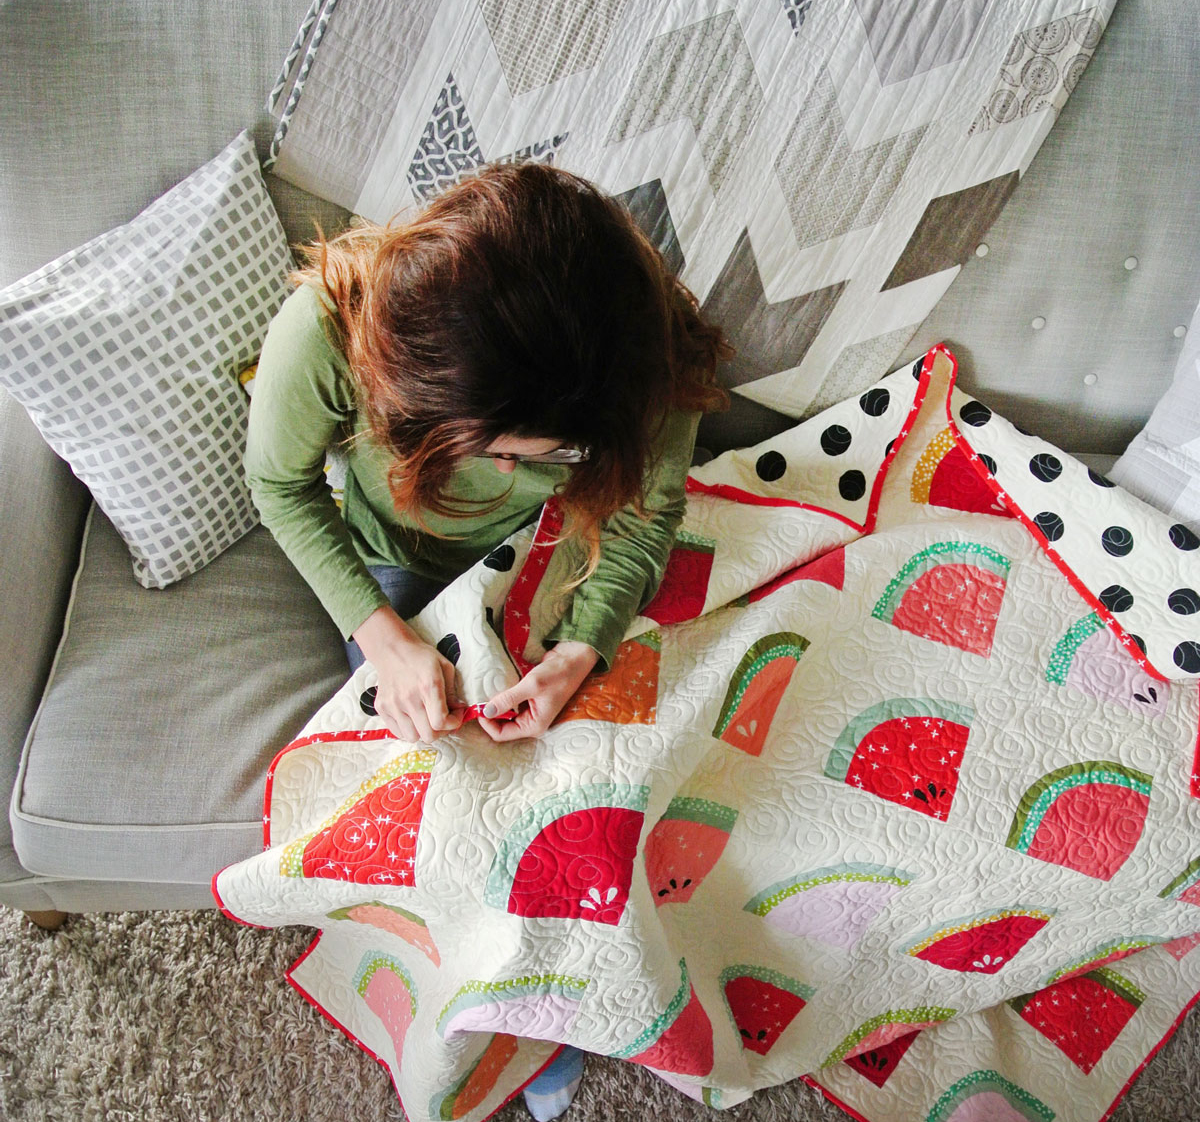 How To Sew Binding On A Quilt (VIDEO!)